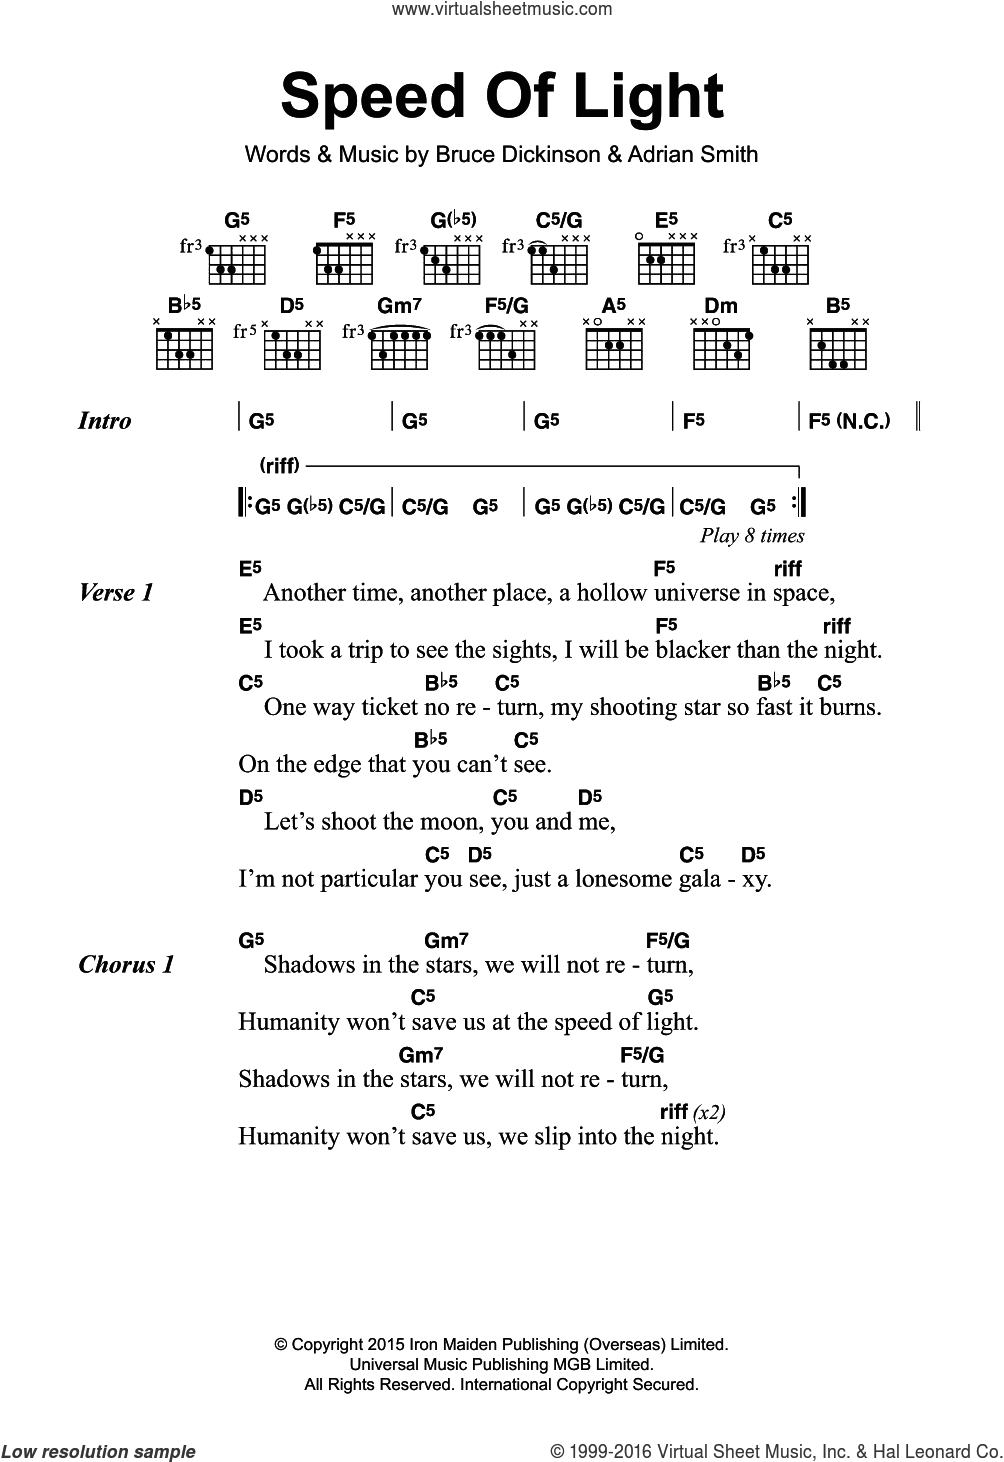 Speed Of Light sheet music for guitar (chords) by Bruce Dickinson, Iron Maiden and Adrian Smith. Score Image Preview.